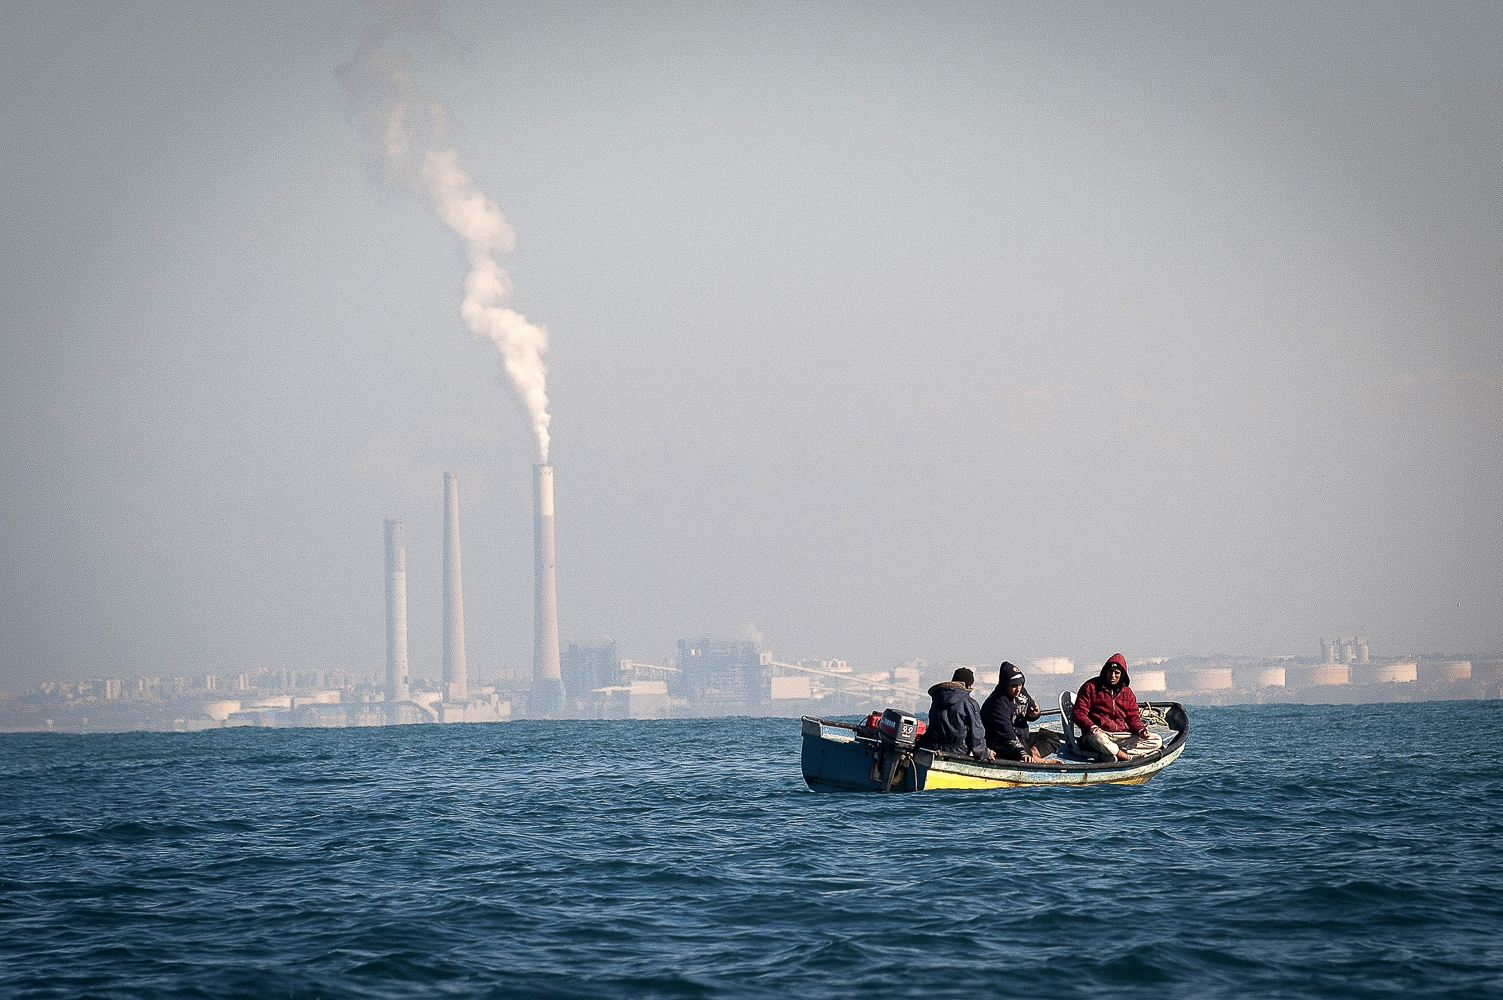 Line boat fishing off the Gazan coast. The chimney stacks behind the line boat are in Israel.